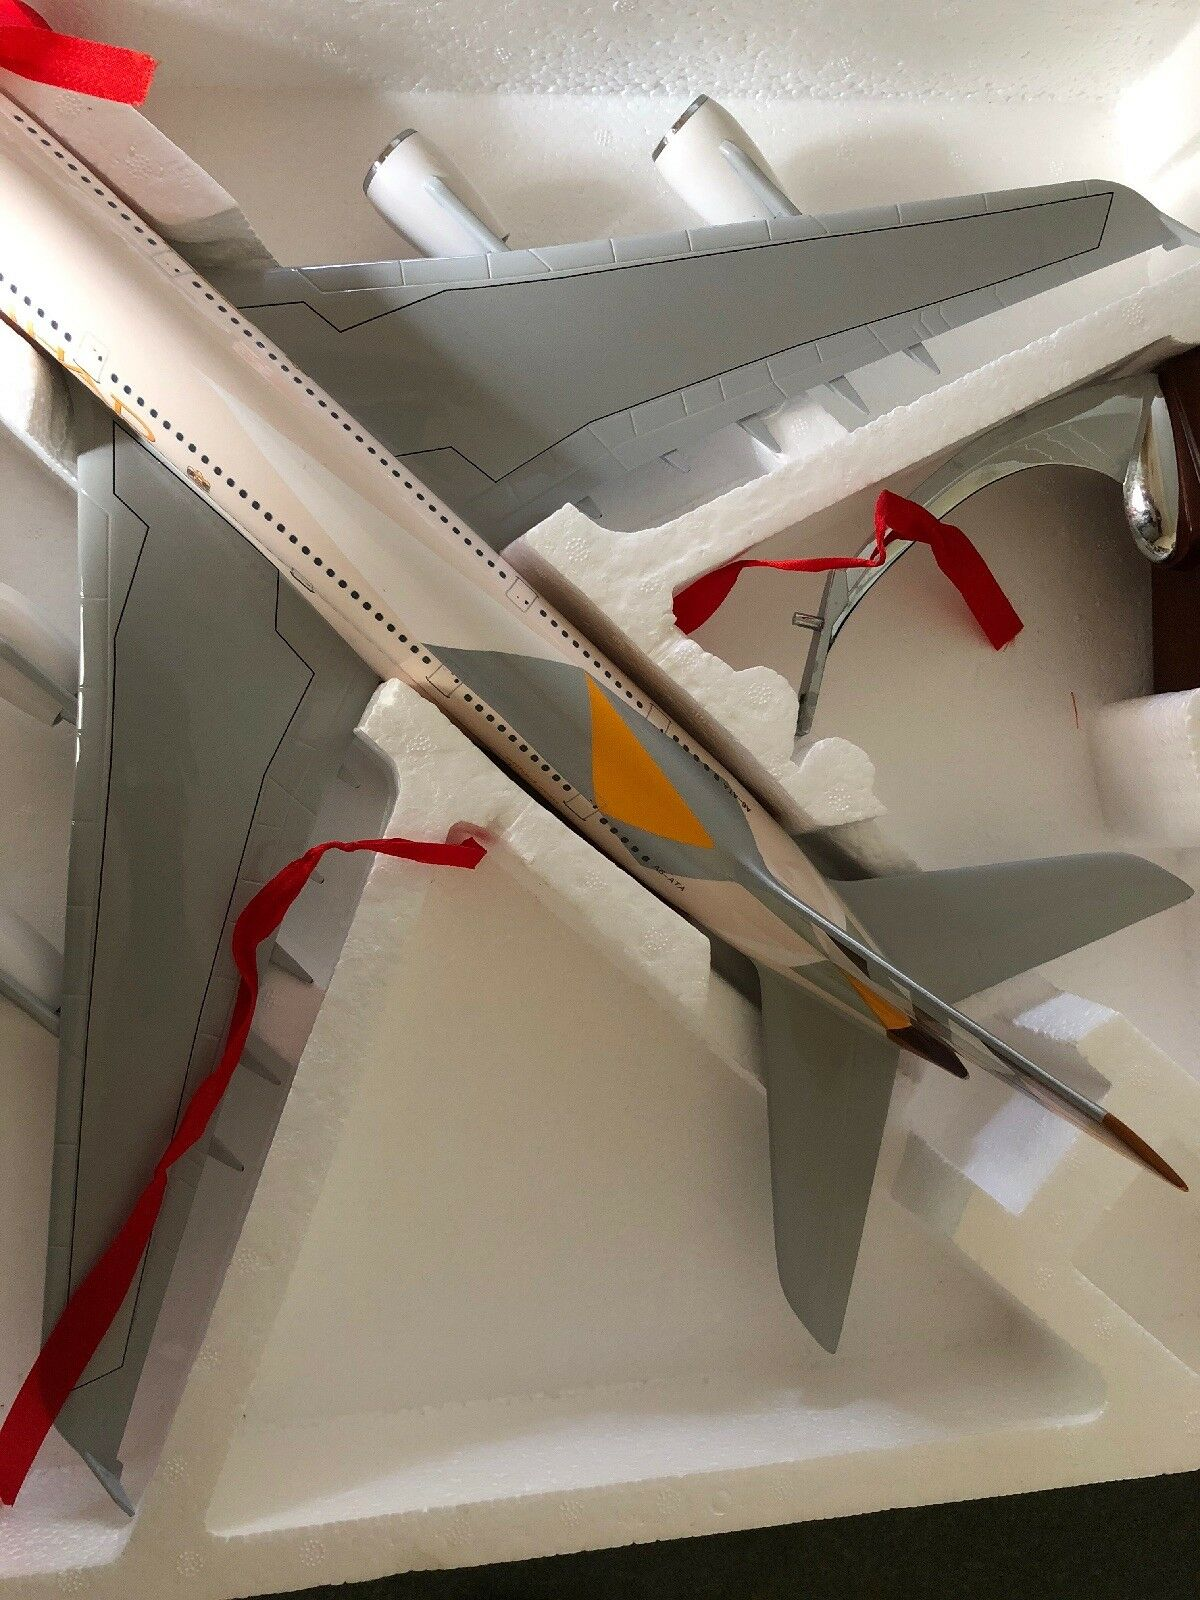 ETIHAD AIRWAYS A380 LARGE PLANE MODEL  1:150 AIRPLANE APX 45cm SOLID